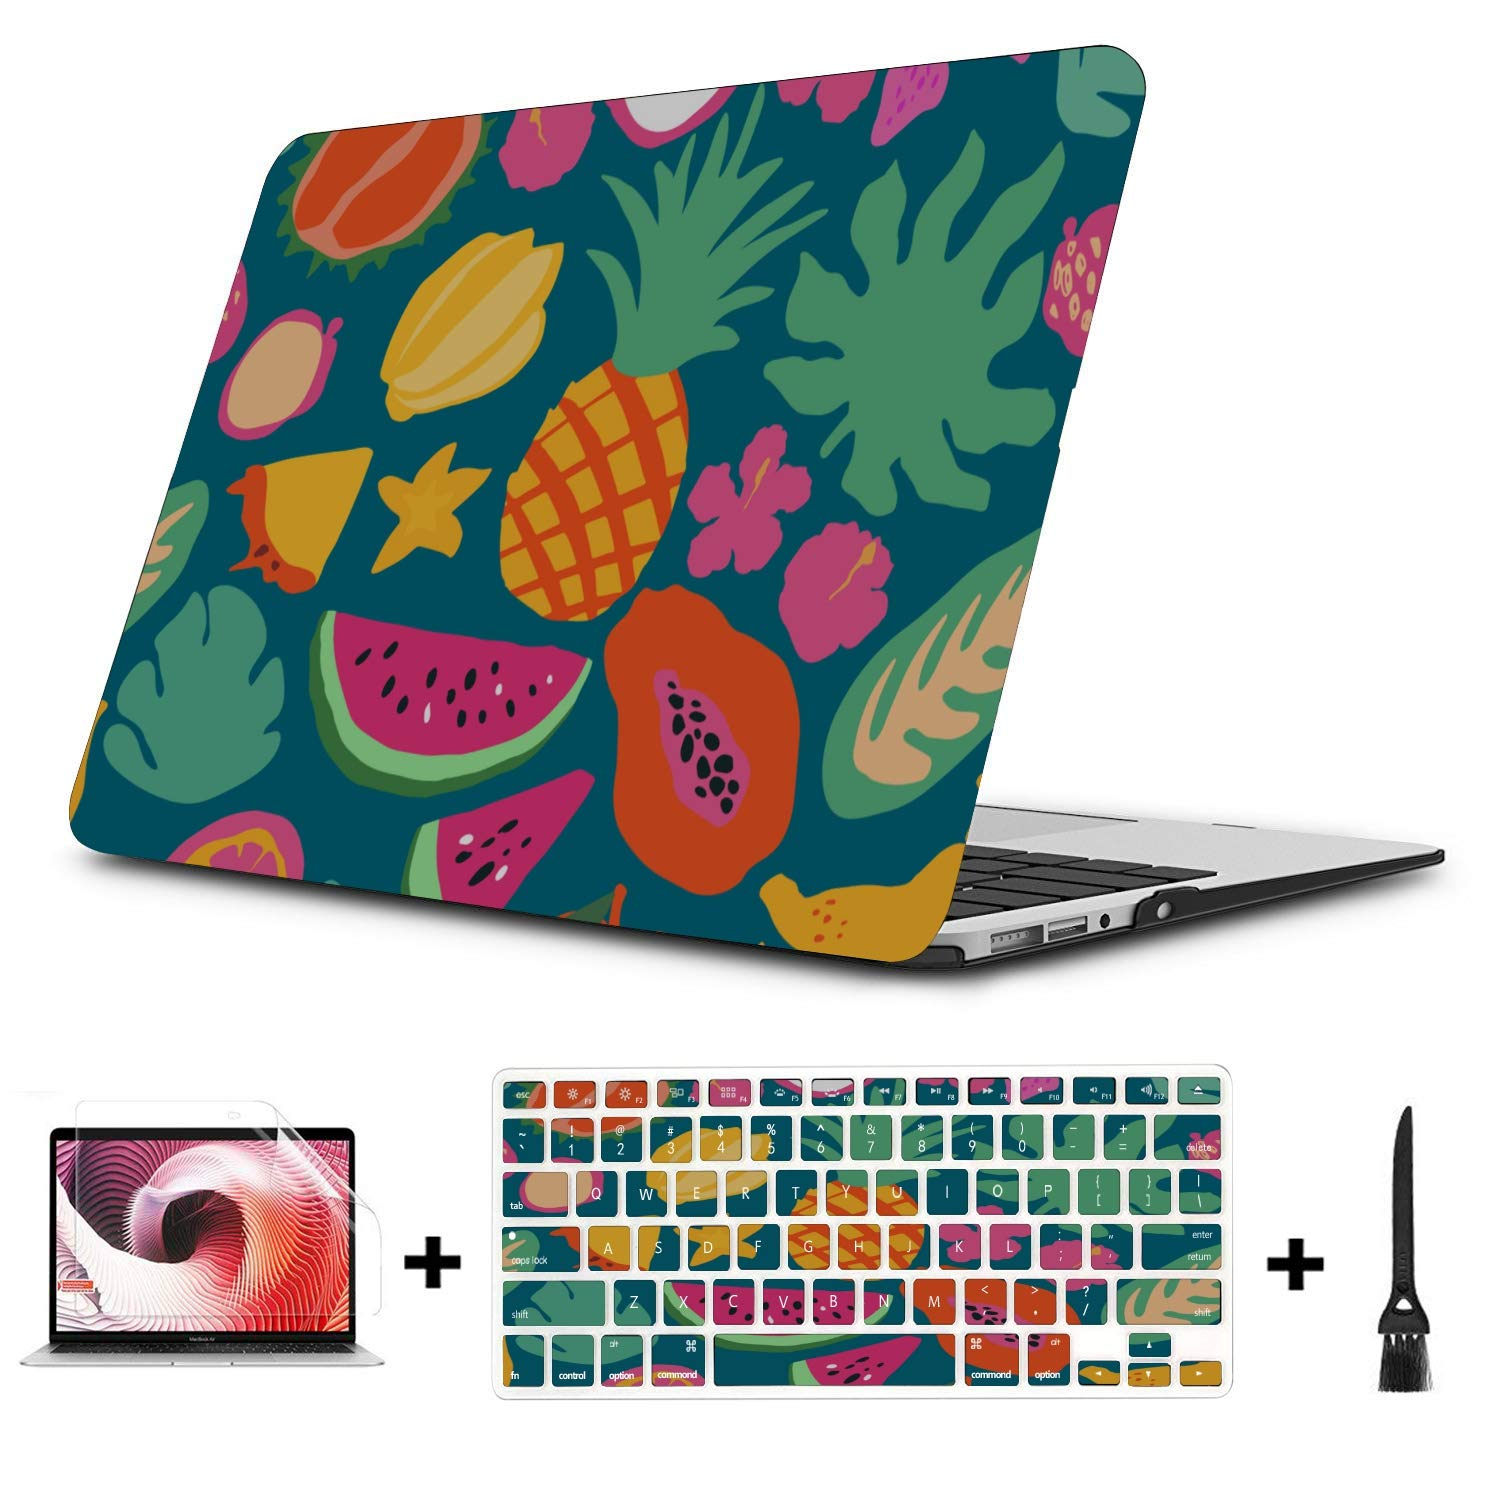 Laptop Protector Case Sweet Art Tropical Fruit Dragon Leaf Plastic Hard Shell Compatible Mac Air 11 Pro 13 15 Mac Book Pro Accessories Protection for MacBook 2016-2019 Version